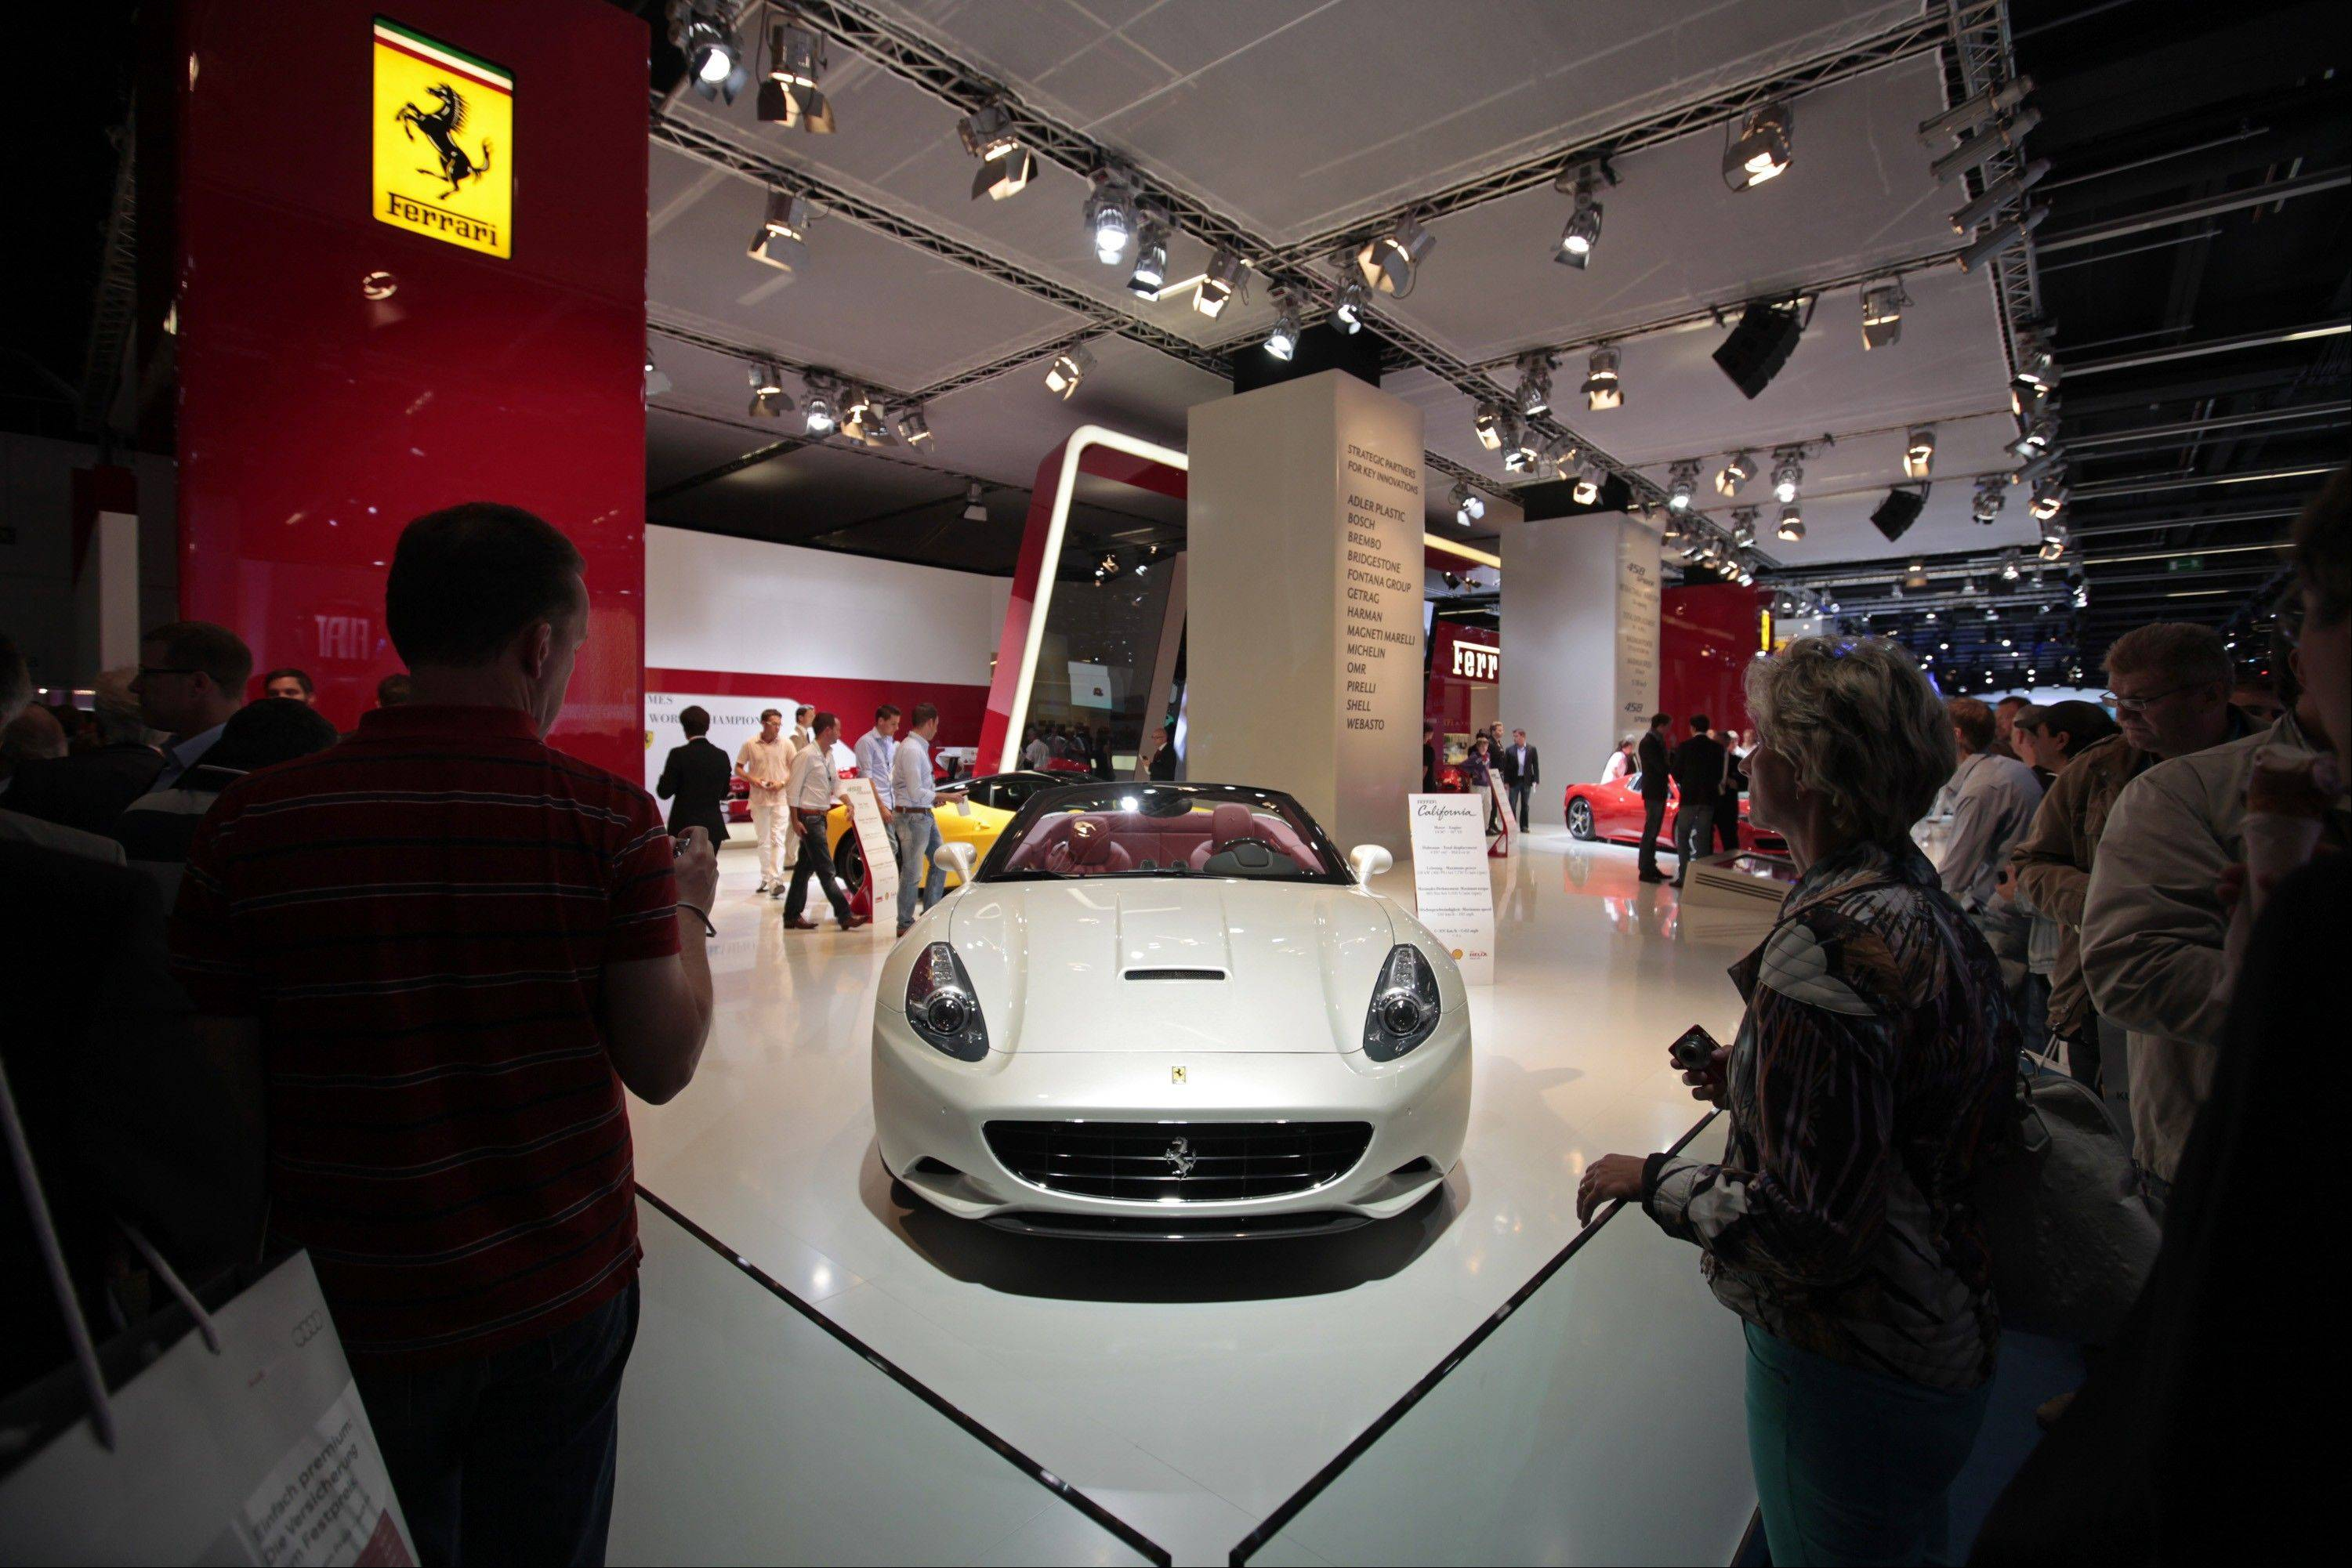 Visitors look at a Ferrari SpA California automobile during the Frankfurt Motor Show, in Frankfurt, Germany Thursday, Sept. 15.